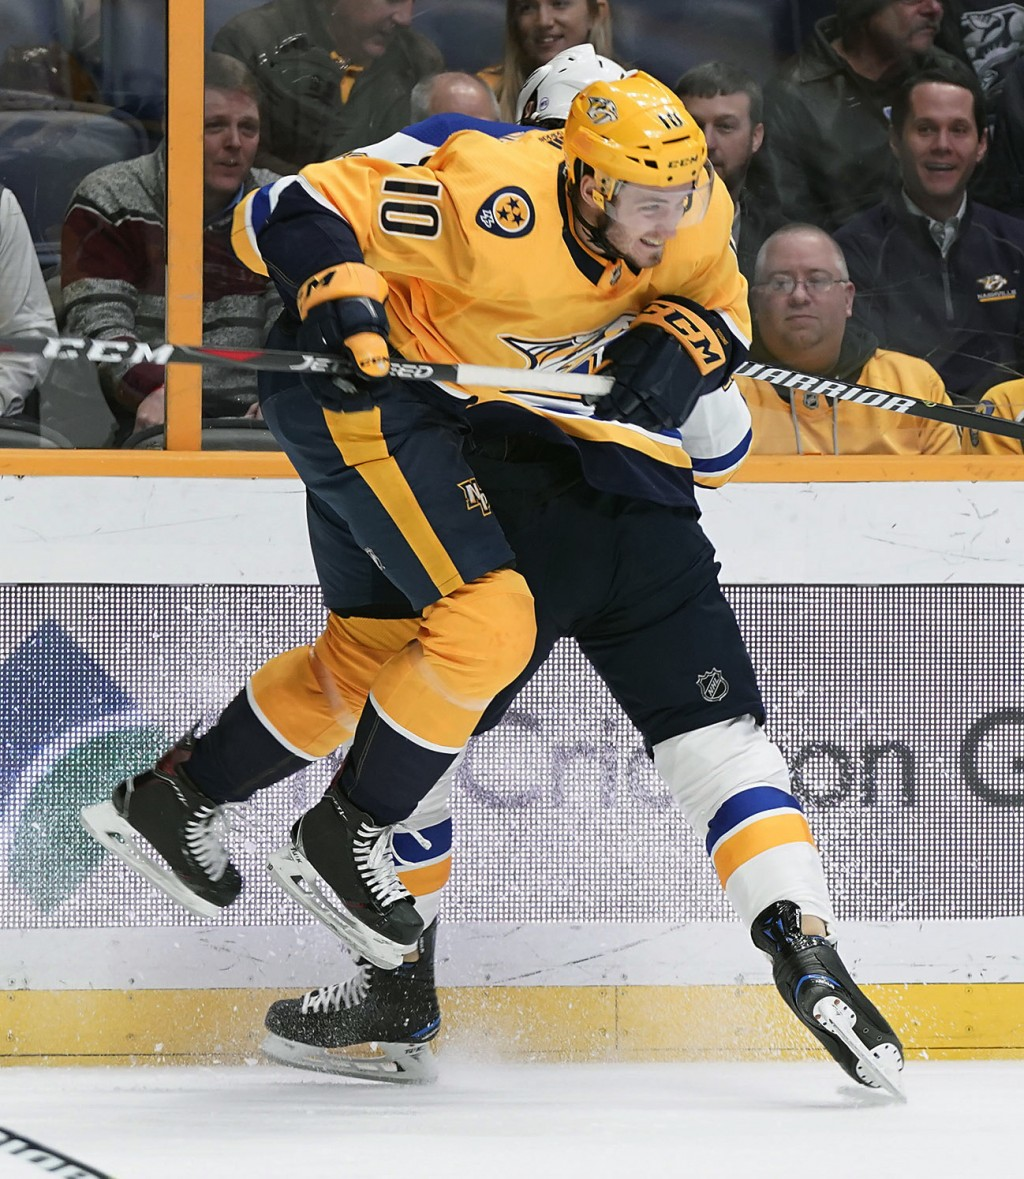 Nashville Predators Colton Sissons (10) alludes a hit by St. Louis Blues Chris Thorburn (22) in the first period of an NHL hockey game Tuesday, Feb. 1